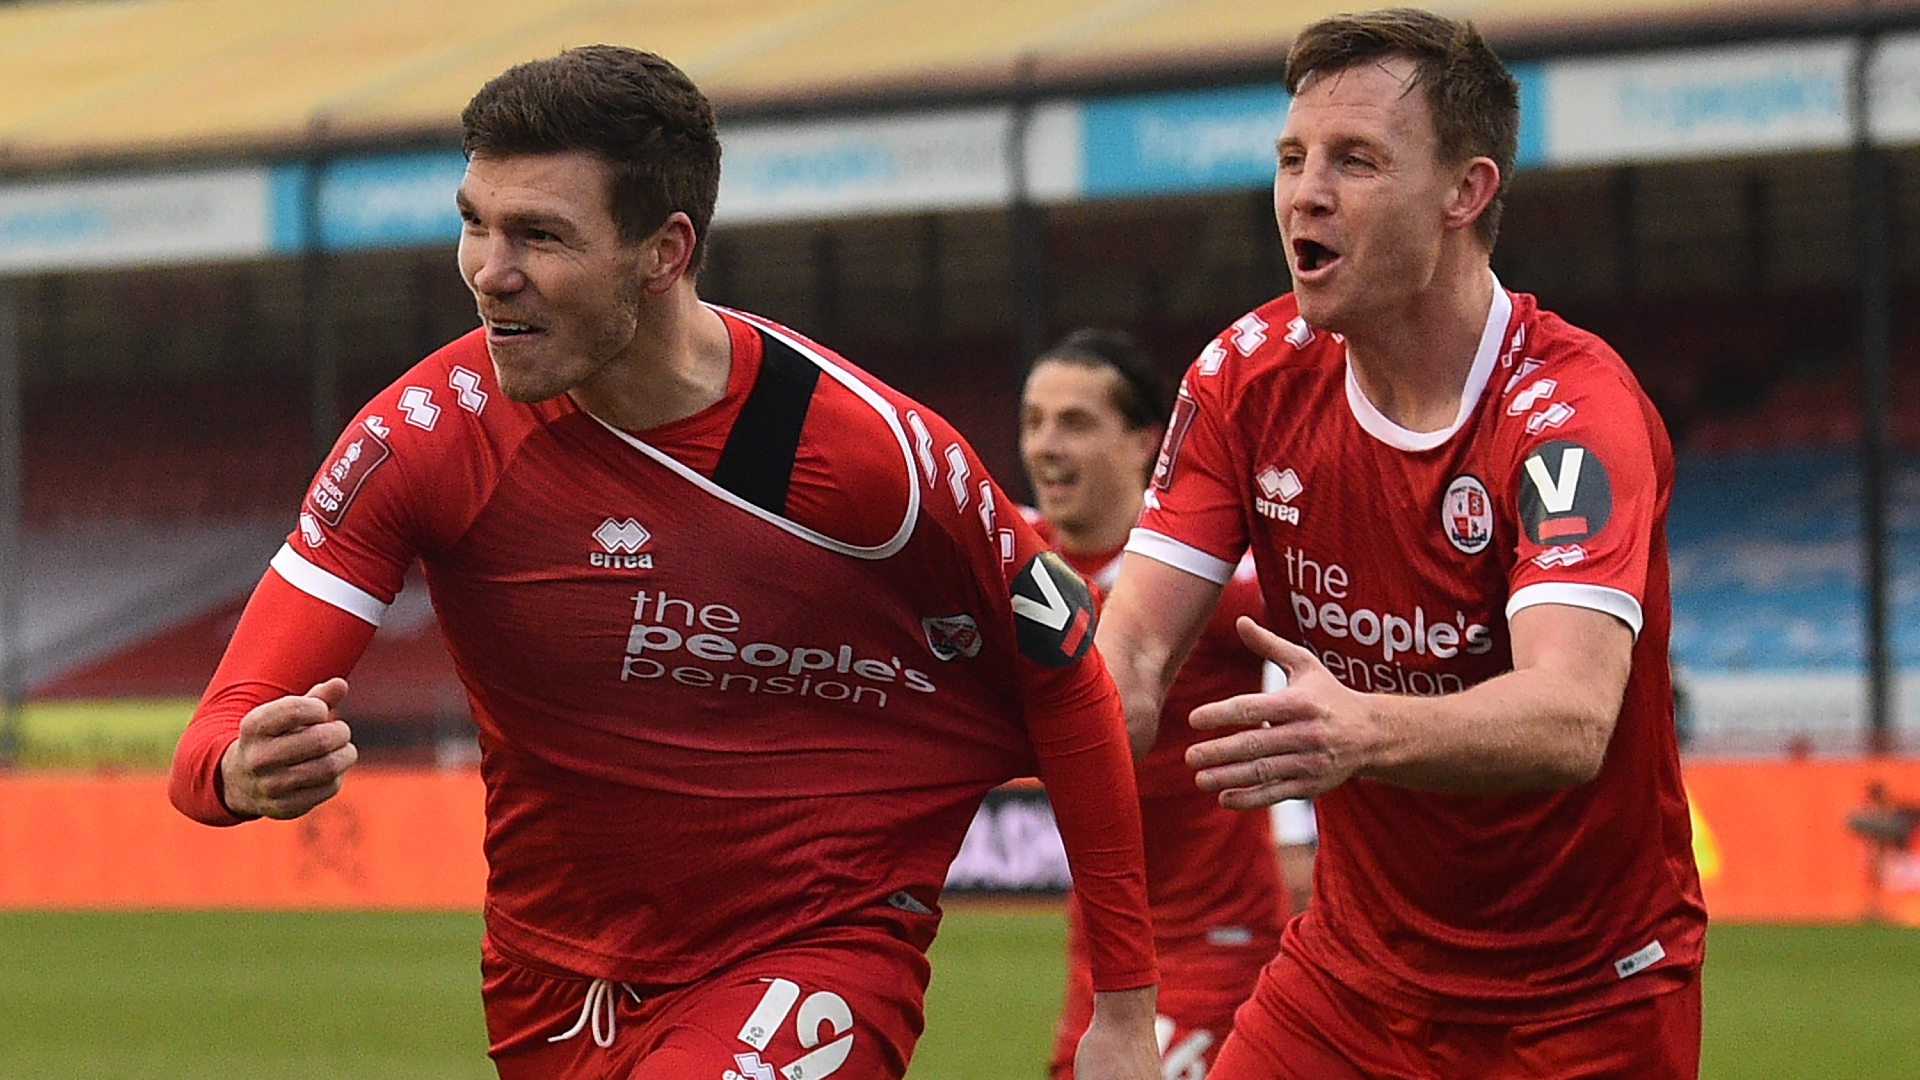 Leeds United shocked by Crawley Town in FA Cup as UK TV star Mark Wright makes debut